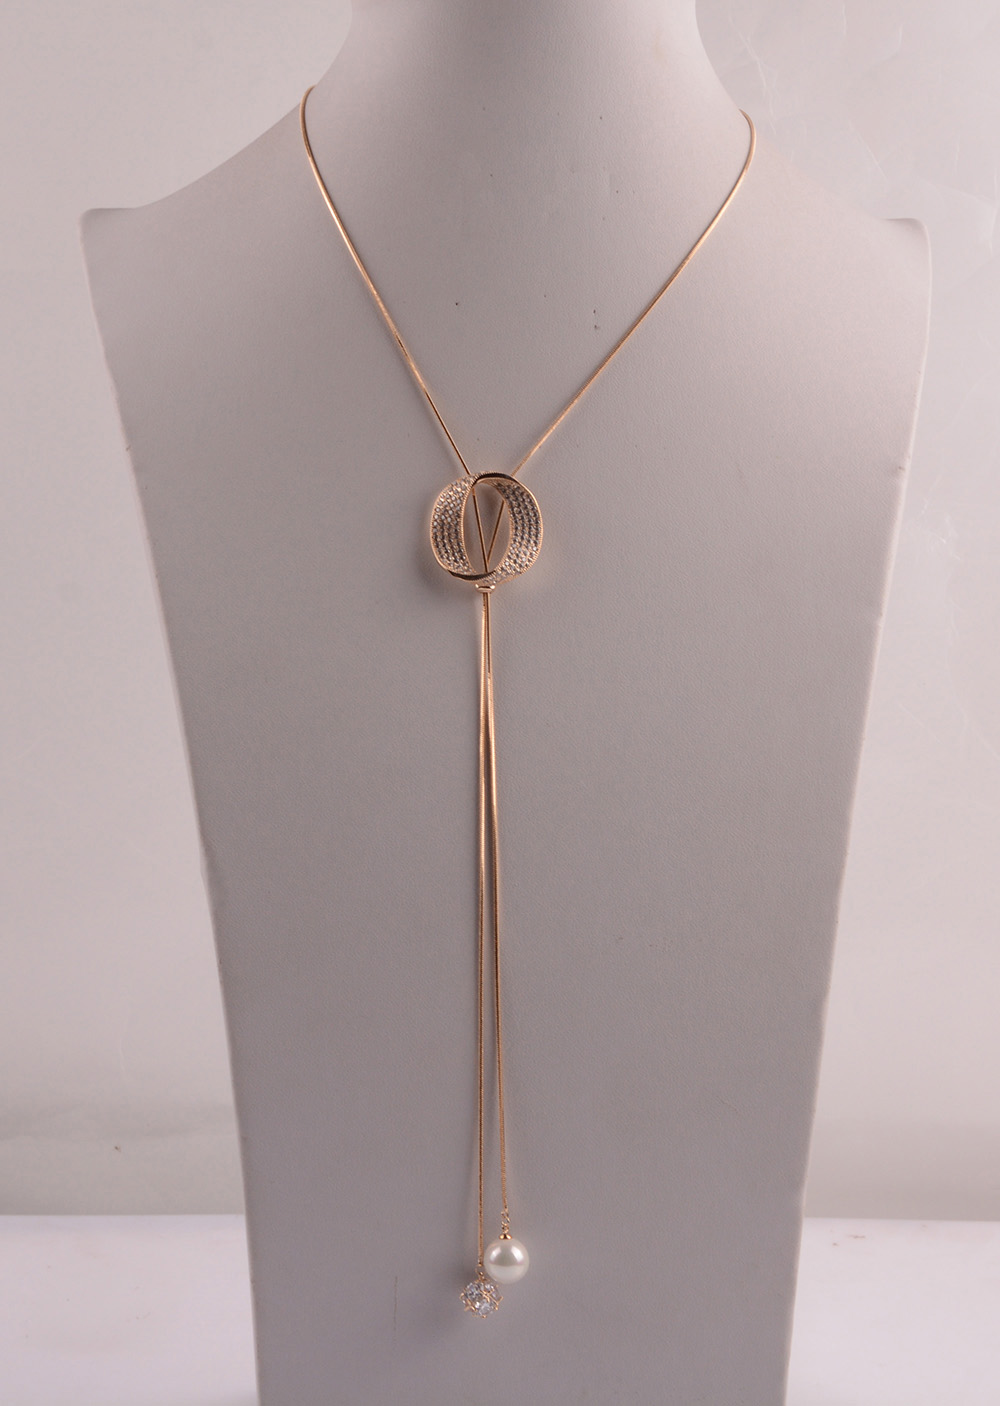 907534 Lady Long Necklace